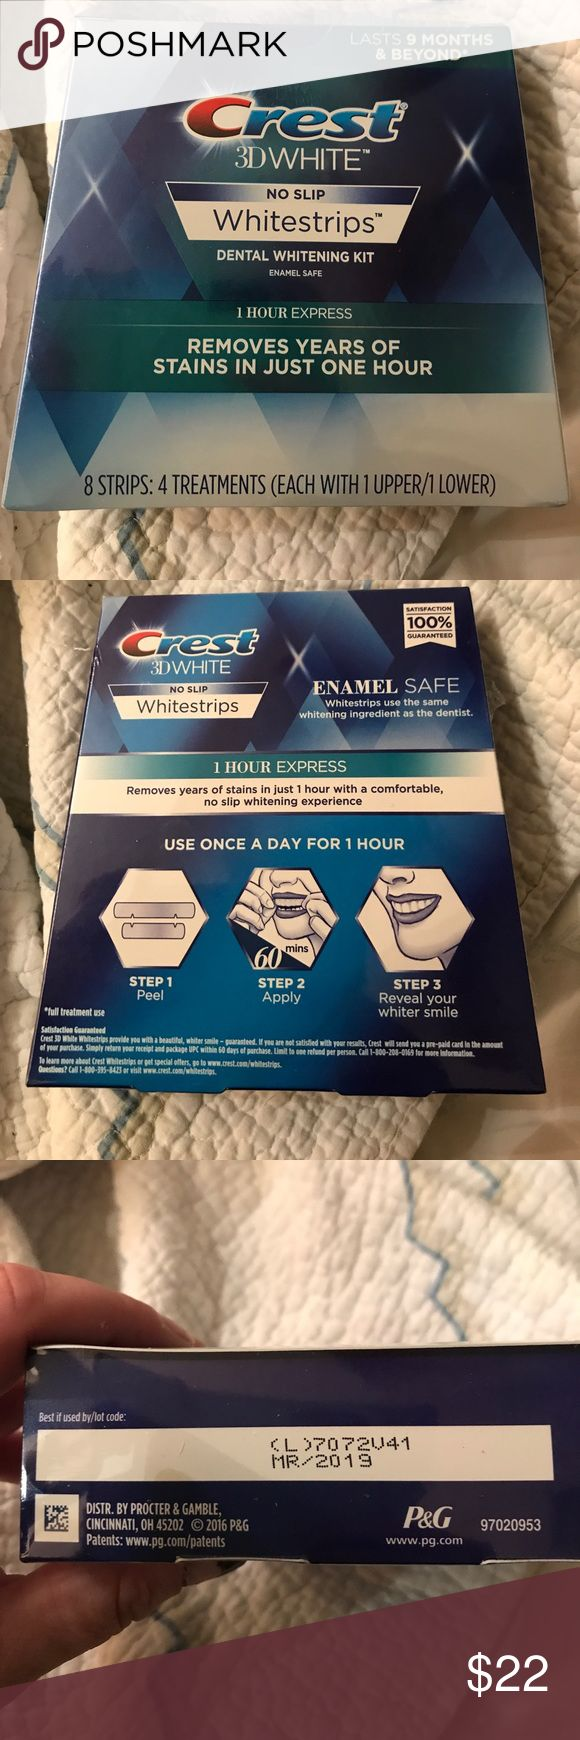 NIB Crest White Strips New Crest white strips 3D. These are no slip whitestrips. There is 4 treatments (8 strips) each with upper and lower. 1 hour express.  Expires 2019. Retails for $54. Price is firm Crest Makeup